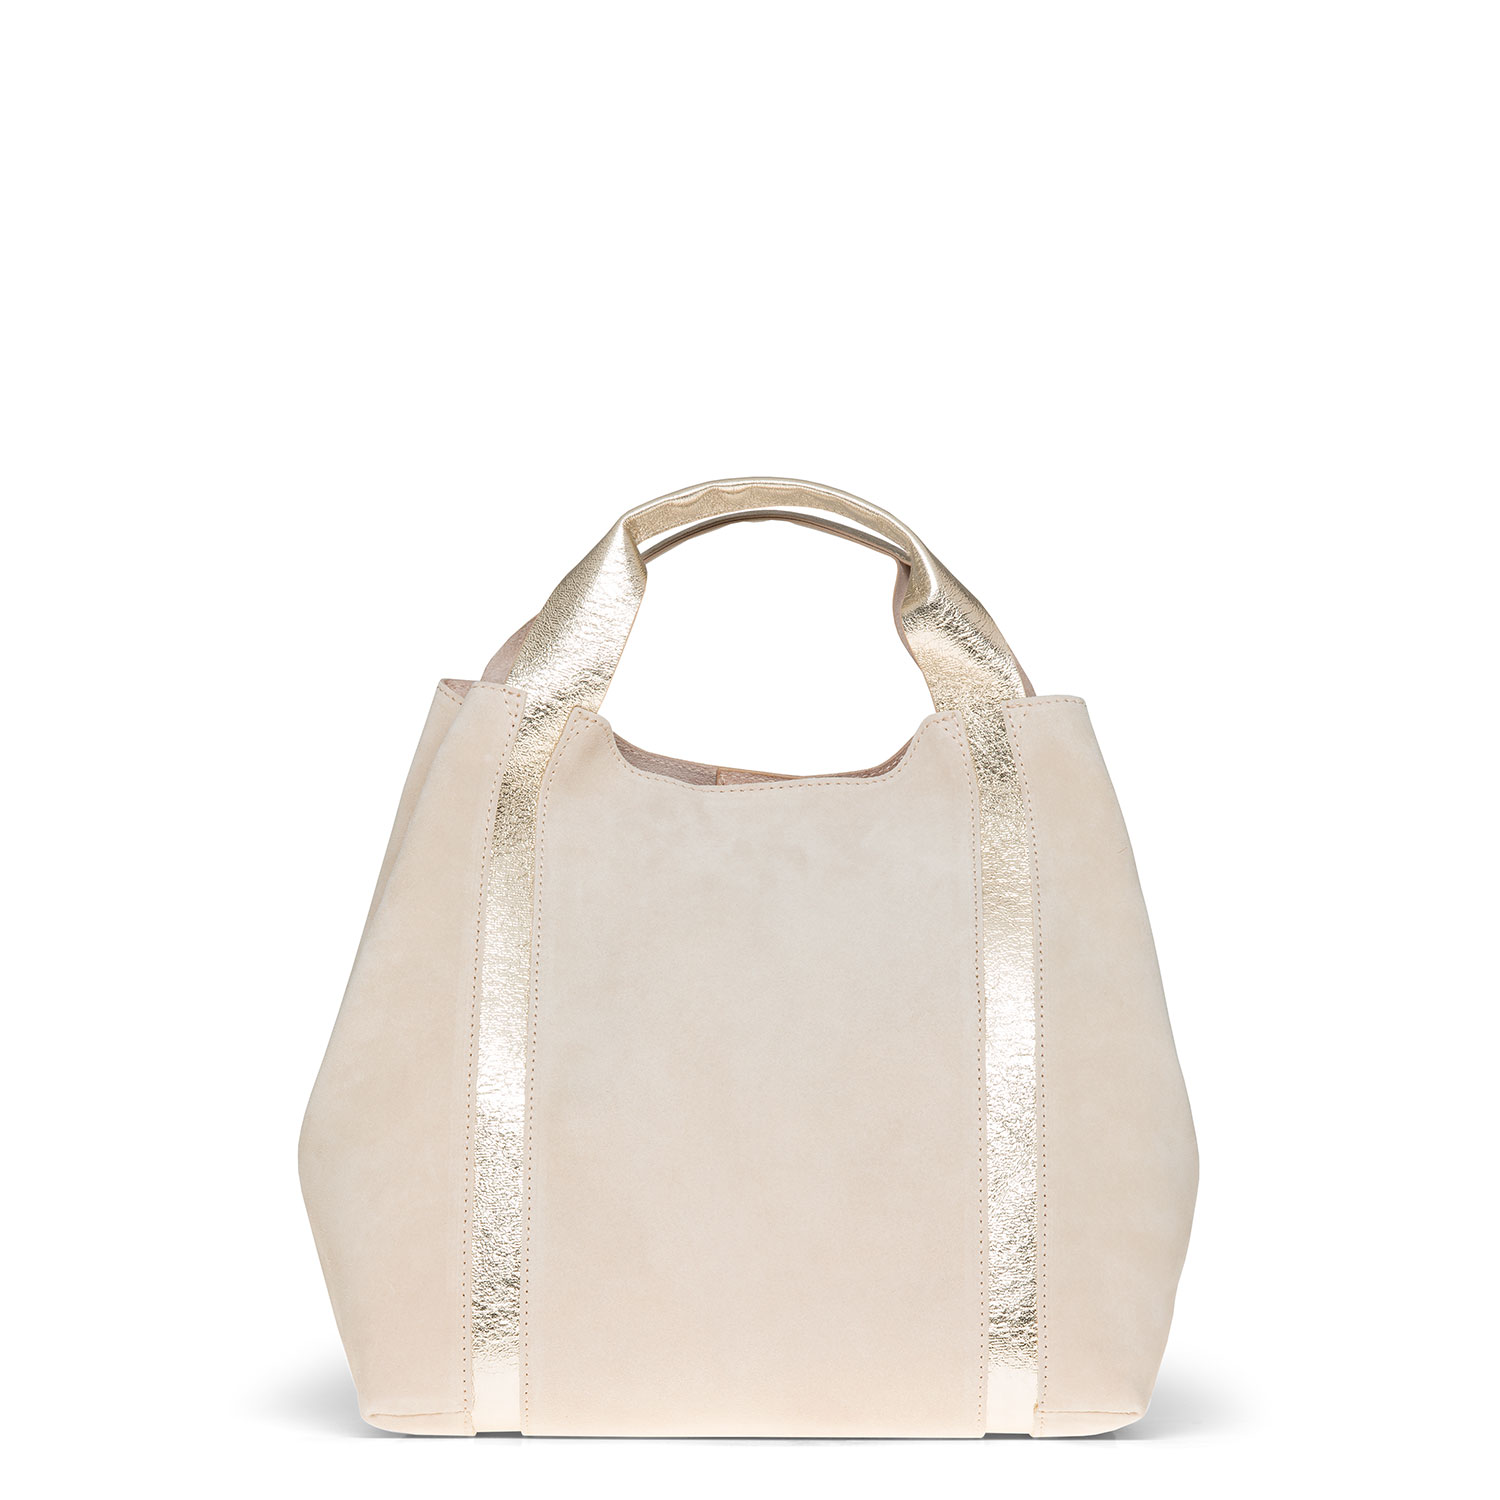 Women's bag PAZOLINI PB-N1060-19